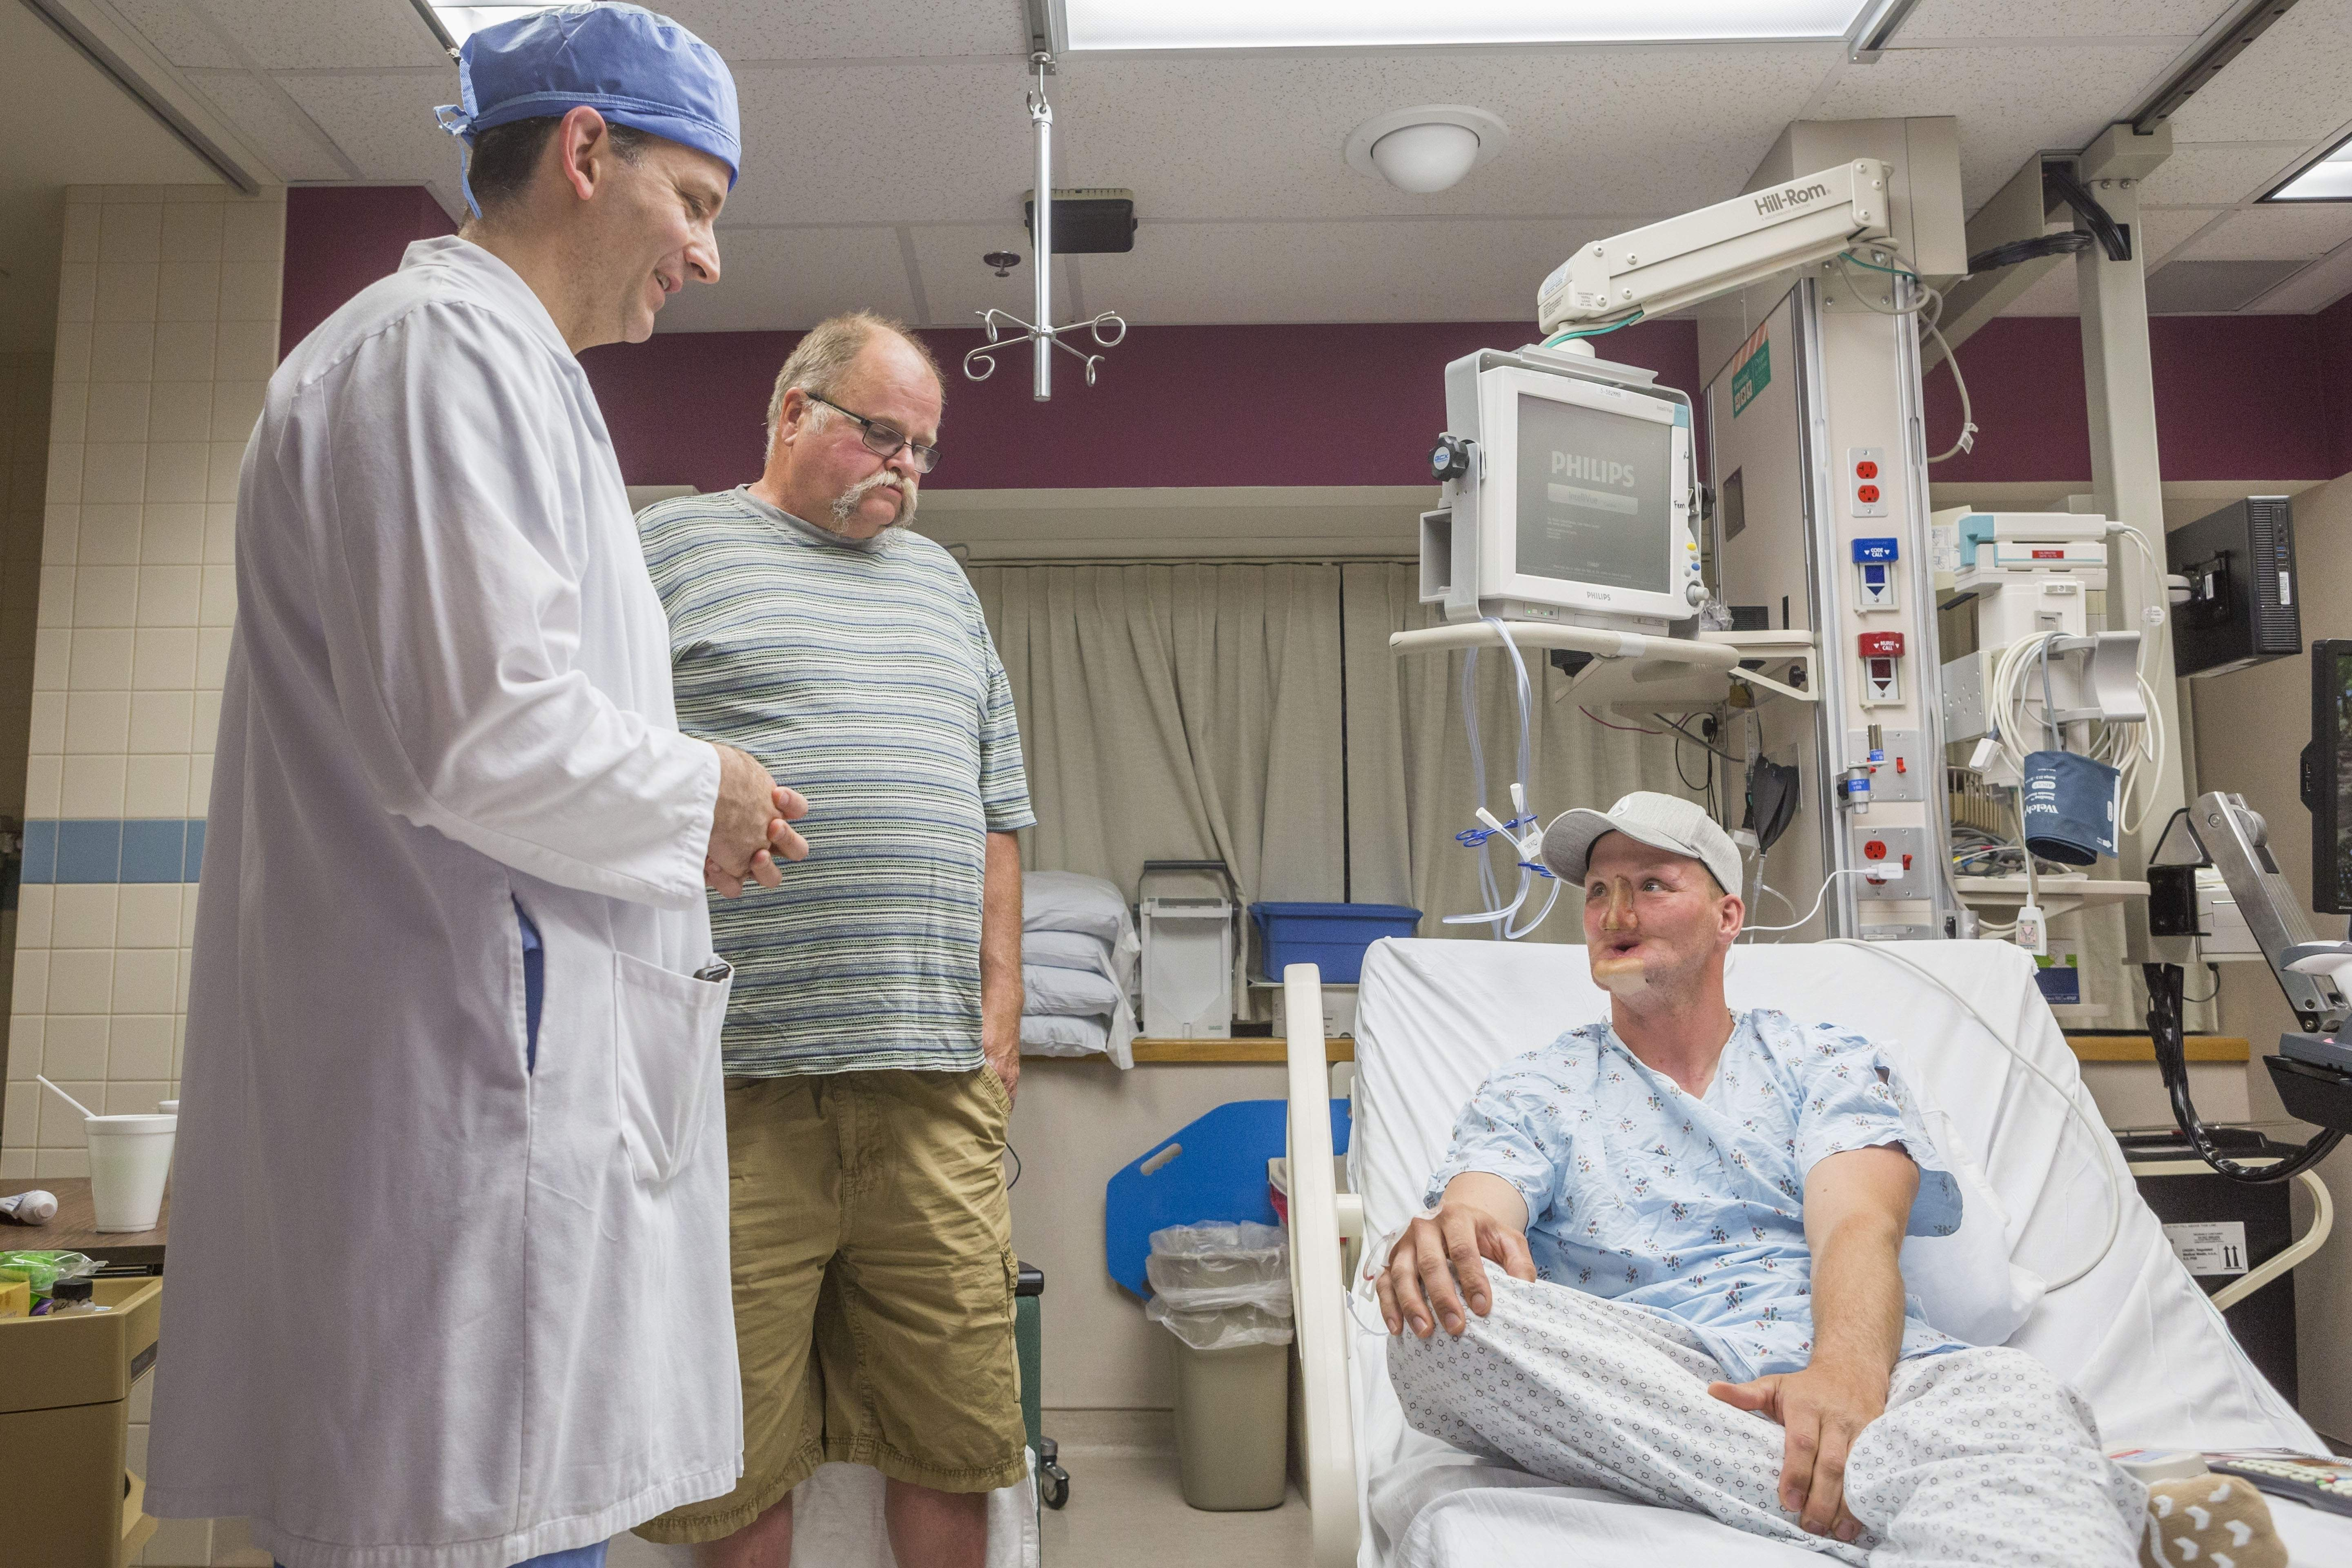 In this June 10, 2016, photo provided by the Mayo Clinic, Andy Sandness, right, talks with his father, Reed Sandness, and Dr. Samir Mardini, left, before Andy's face transplant procedure at the Mayo Clinic in Rochester, Minn. In the process leading up to the surgery, Mardini tried to temper his patient's enthusiasm. 'Think very hard about this,' he said. Only a few dozen transplants have been done around the world, and he wanted Andy to understand the risks and the aftermath: a lifelong regimen of anti-rejection drugs. But Sandness could hardly contain himself. 'How long until I can do this?' he asked. THE ASSOCIATED PRESS